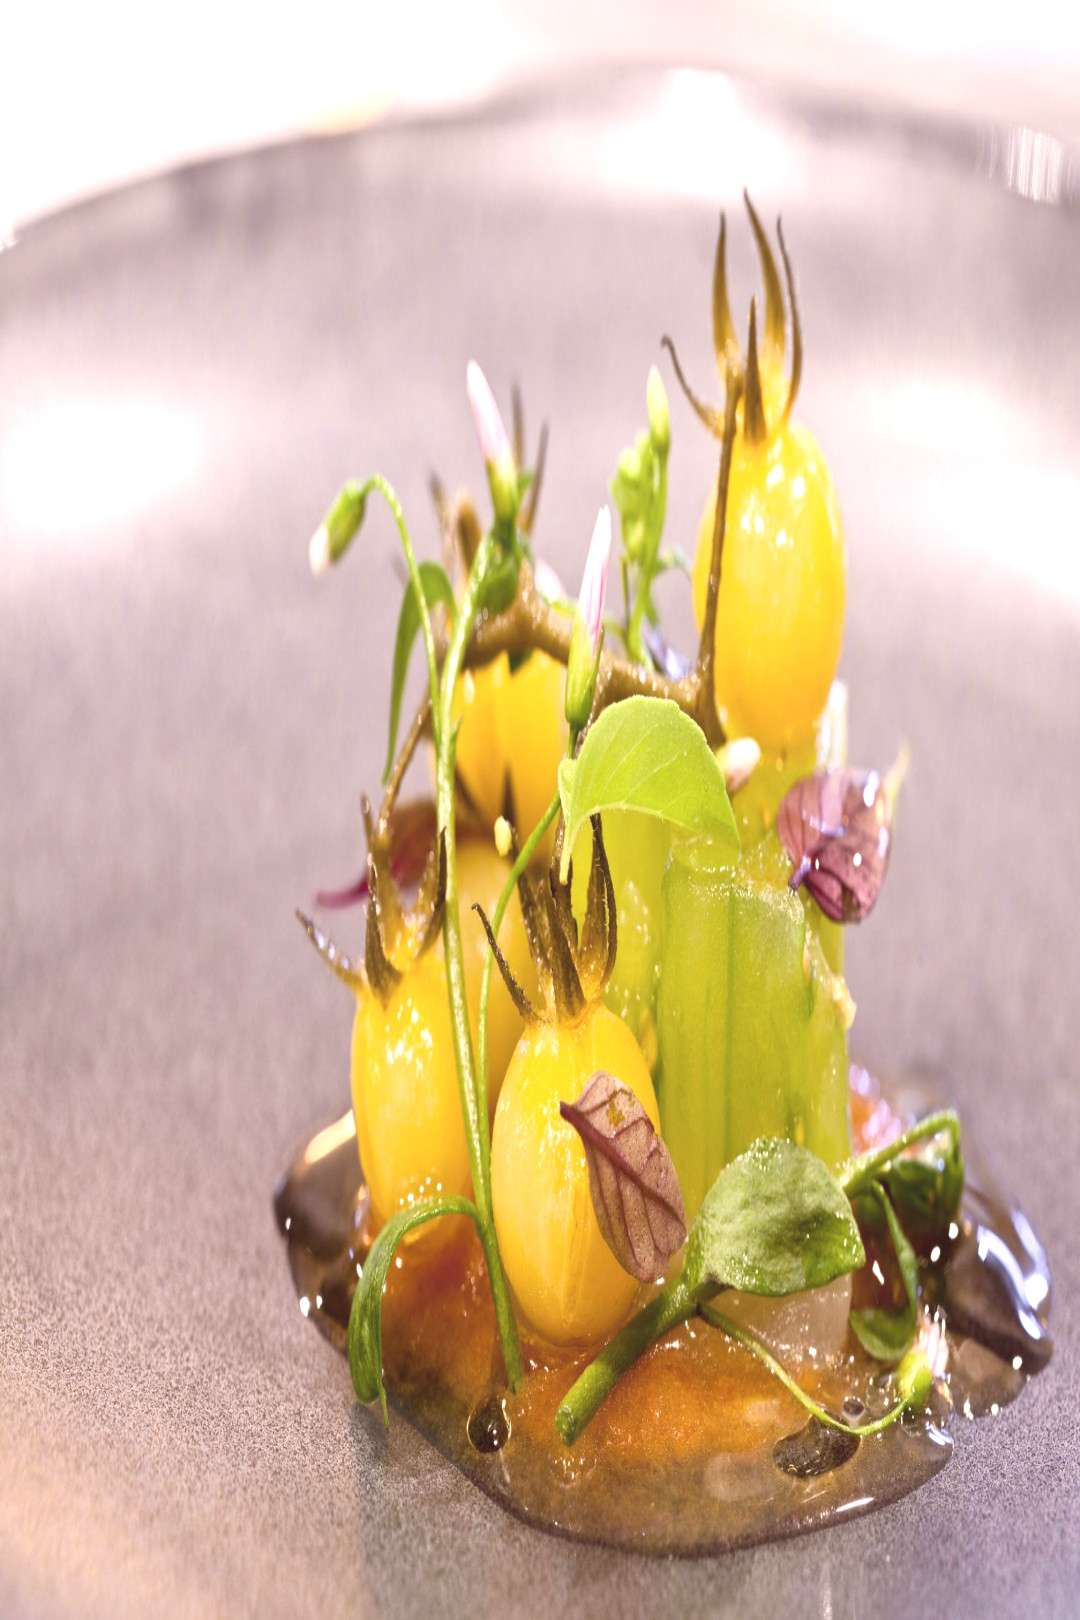 Greenhouse Heirloom Tomatoes with Pink Grouper - -